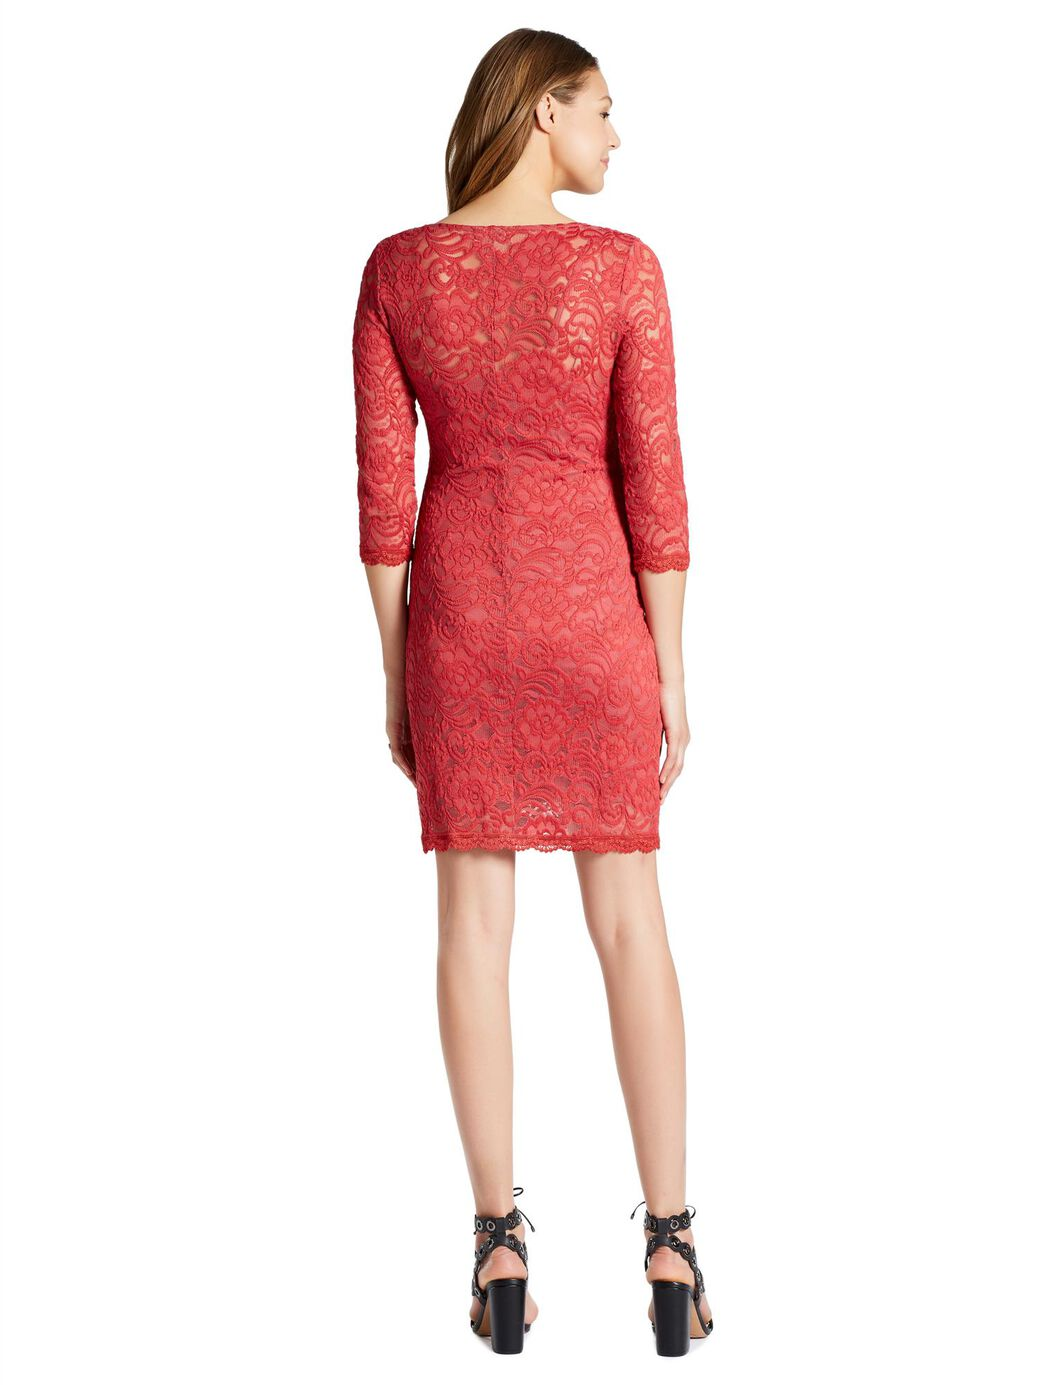 Jessica simpson lace body con maternity dress motherhood maternity jessica simpson lace body con maternity dress holly berry ombrellifo Gallery